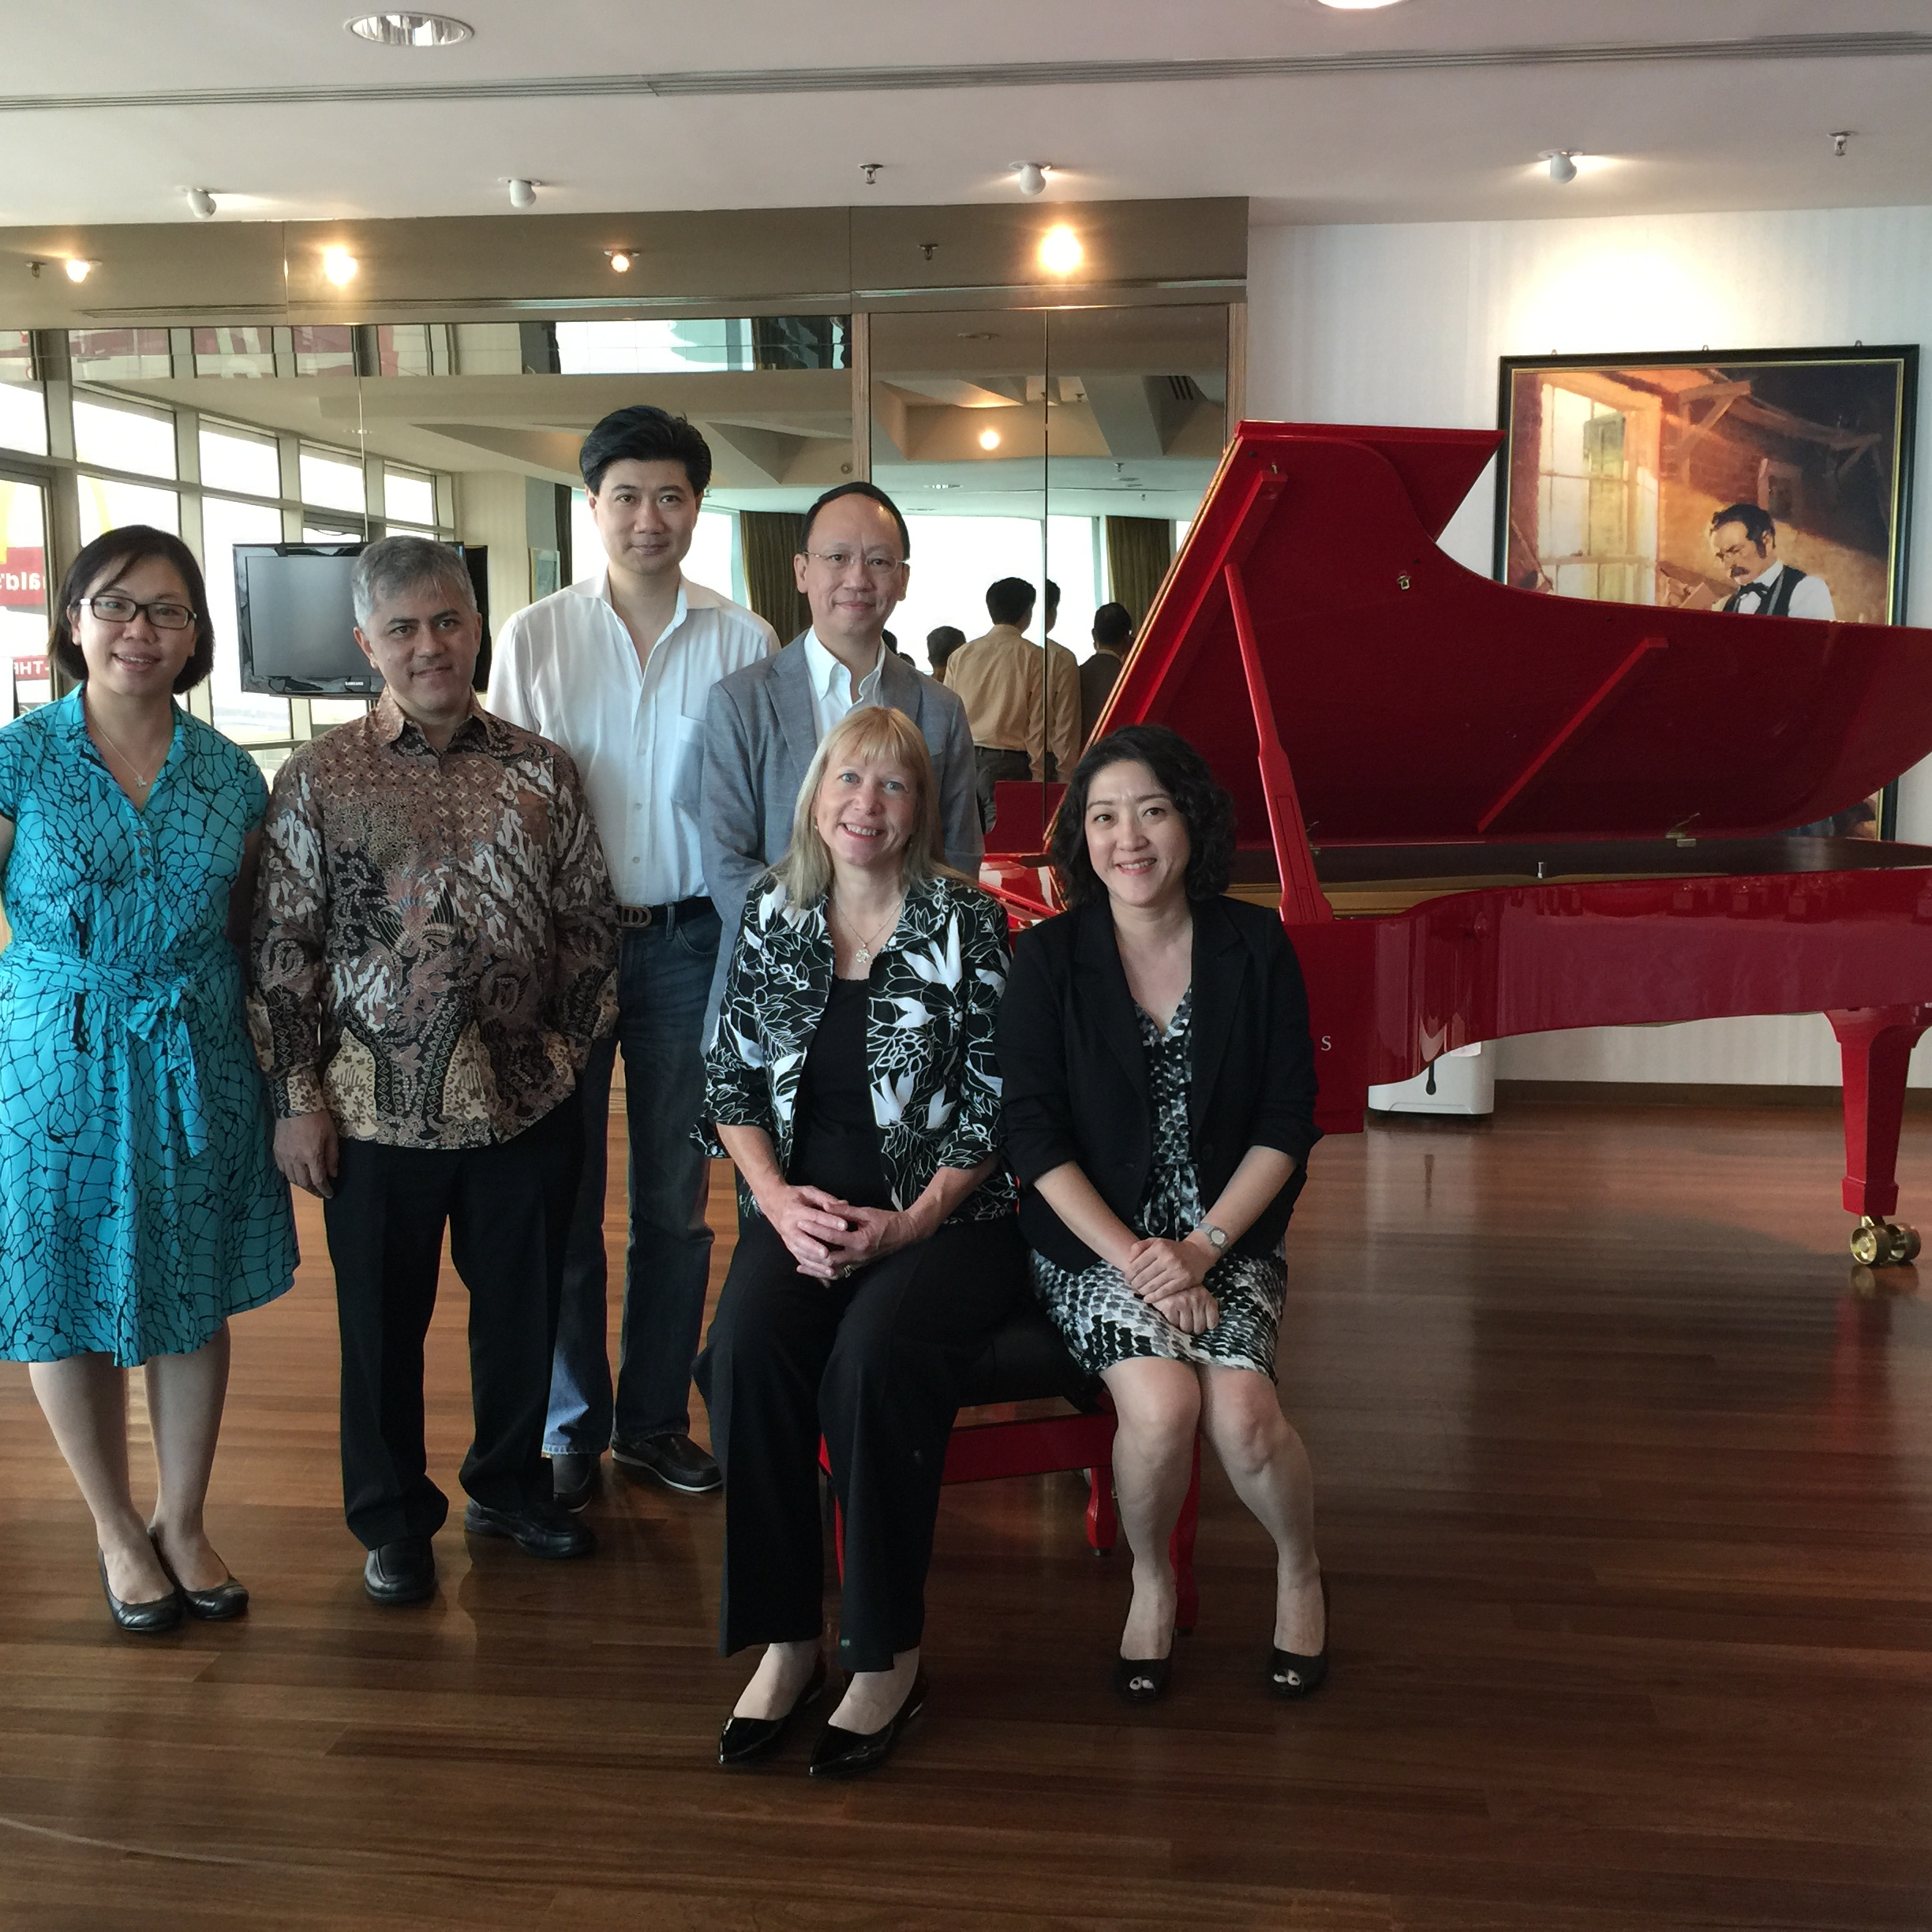 Jury members (front seated) Lindsey Butterfield (left), Chee Su Yen (right). Back standing: from right to left - BL, Andrew Ma, Iswargia Sudarno. Far left standing: Fan Sow Mun (Competition Director)